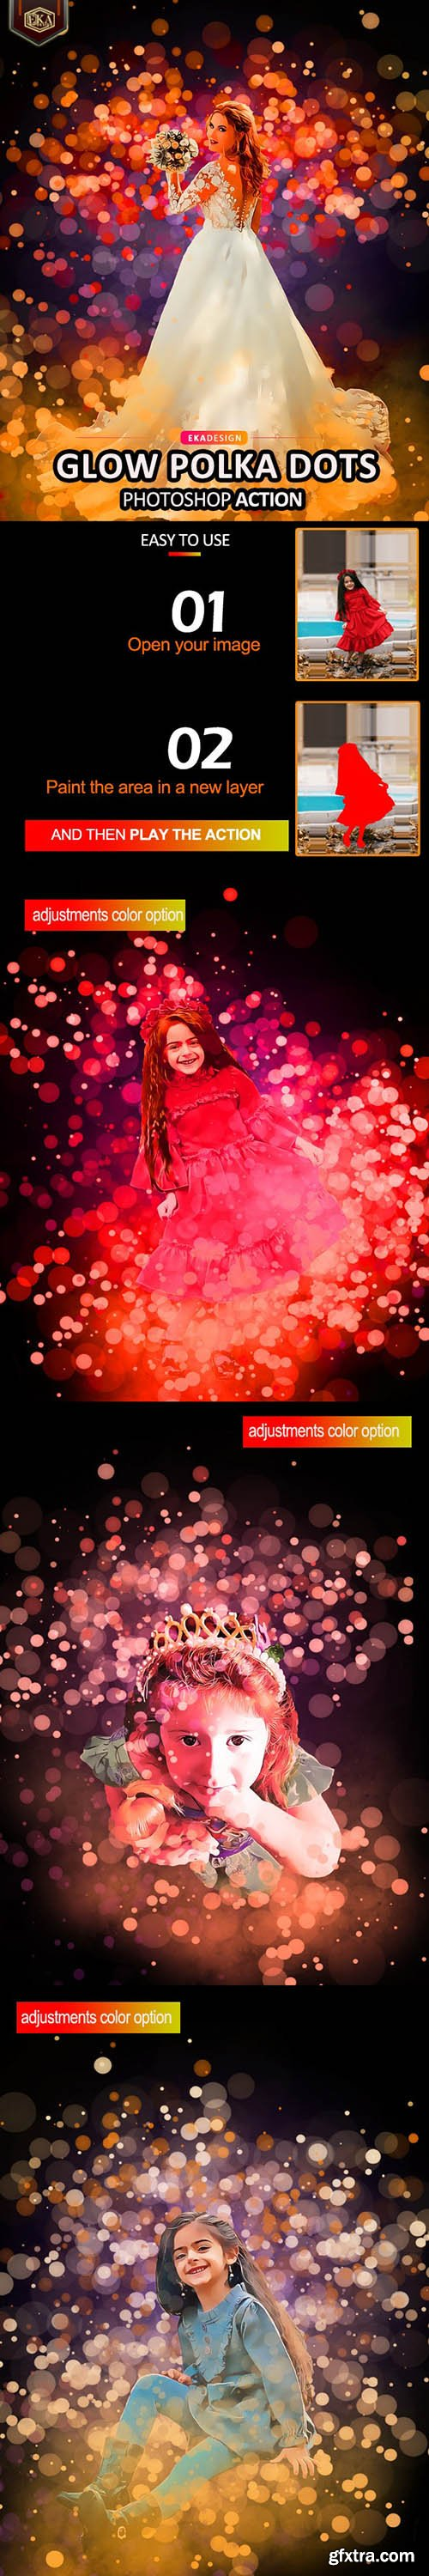 GraphicRiver - Glow Polka dots Photoshop Action 32501223